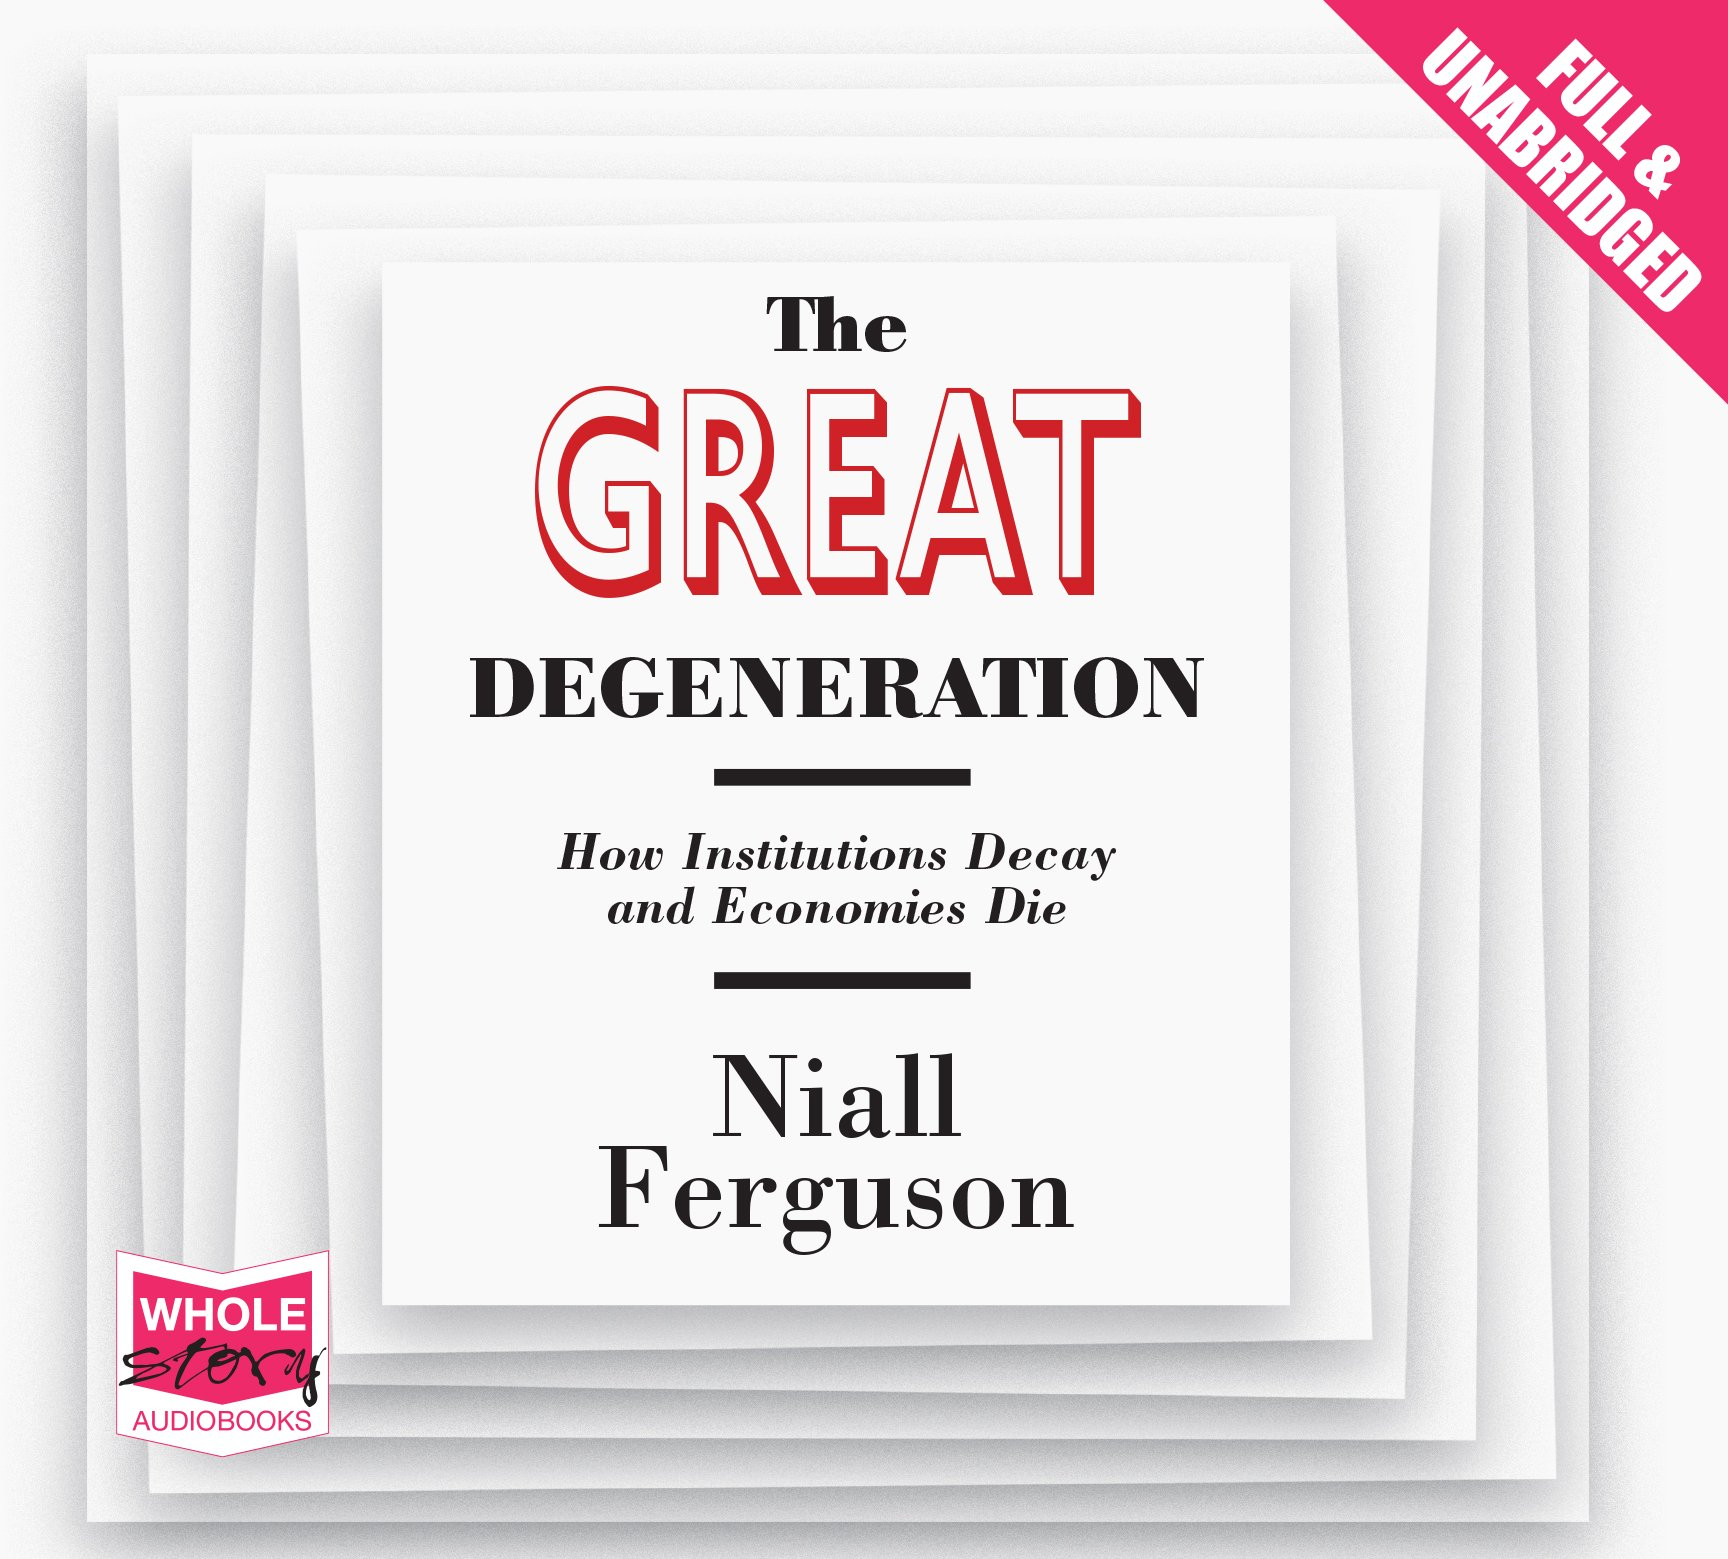 The Great Degeneration: Niall Ferguson: 9781471230561: Amazon: Books